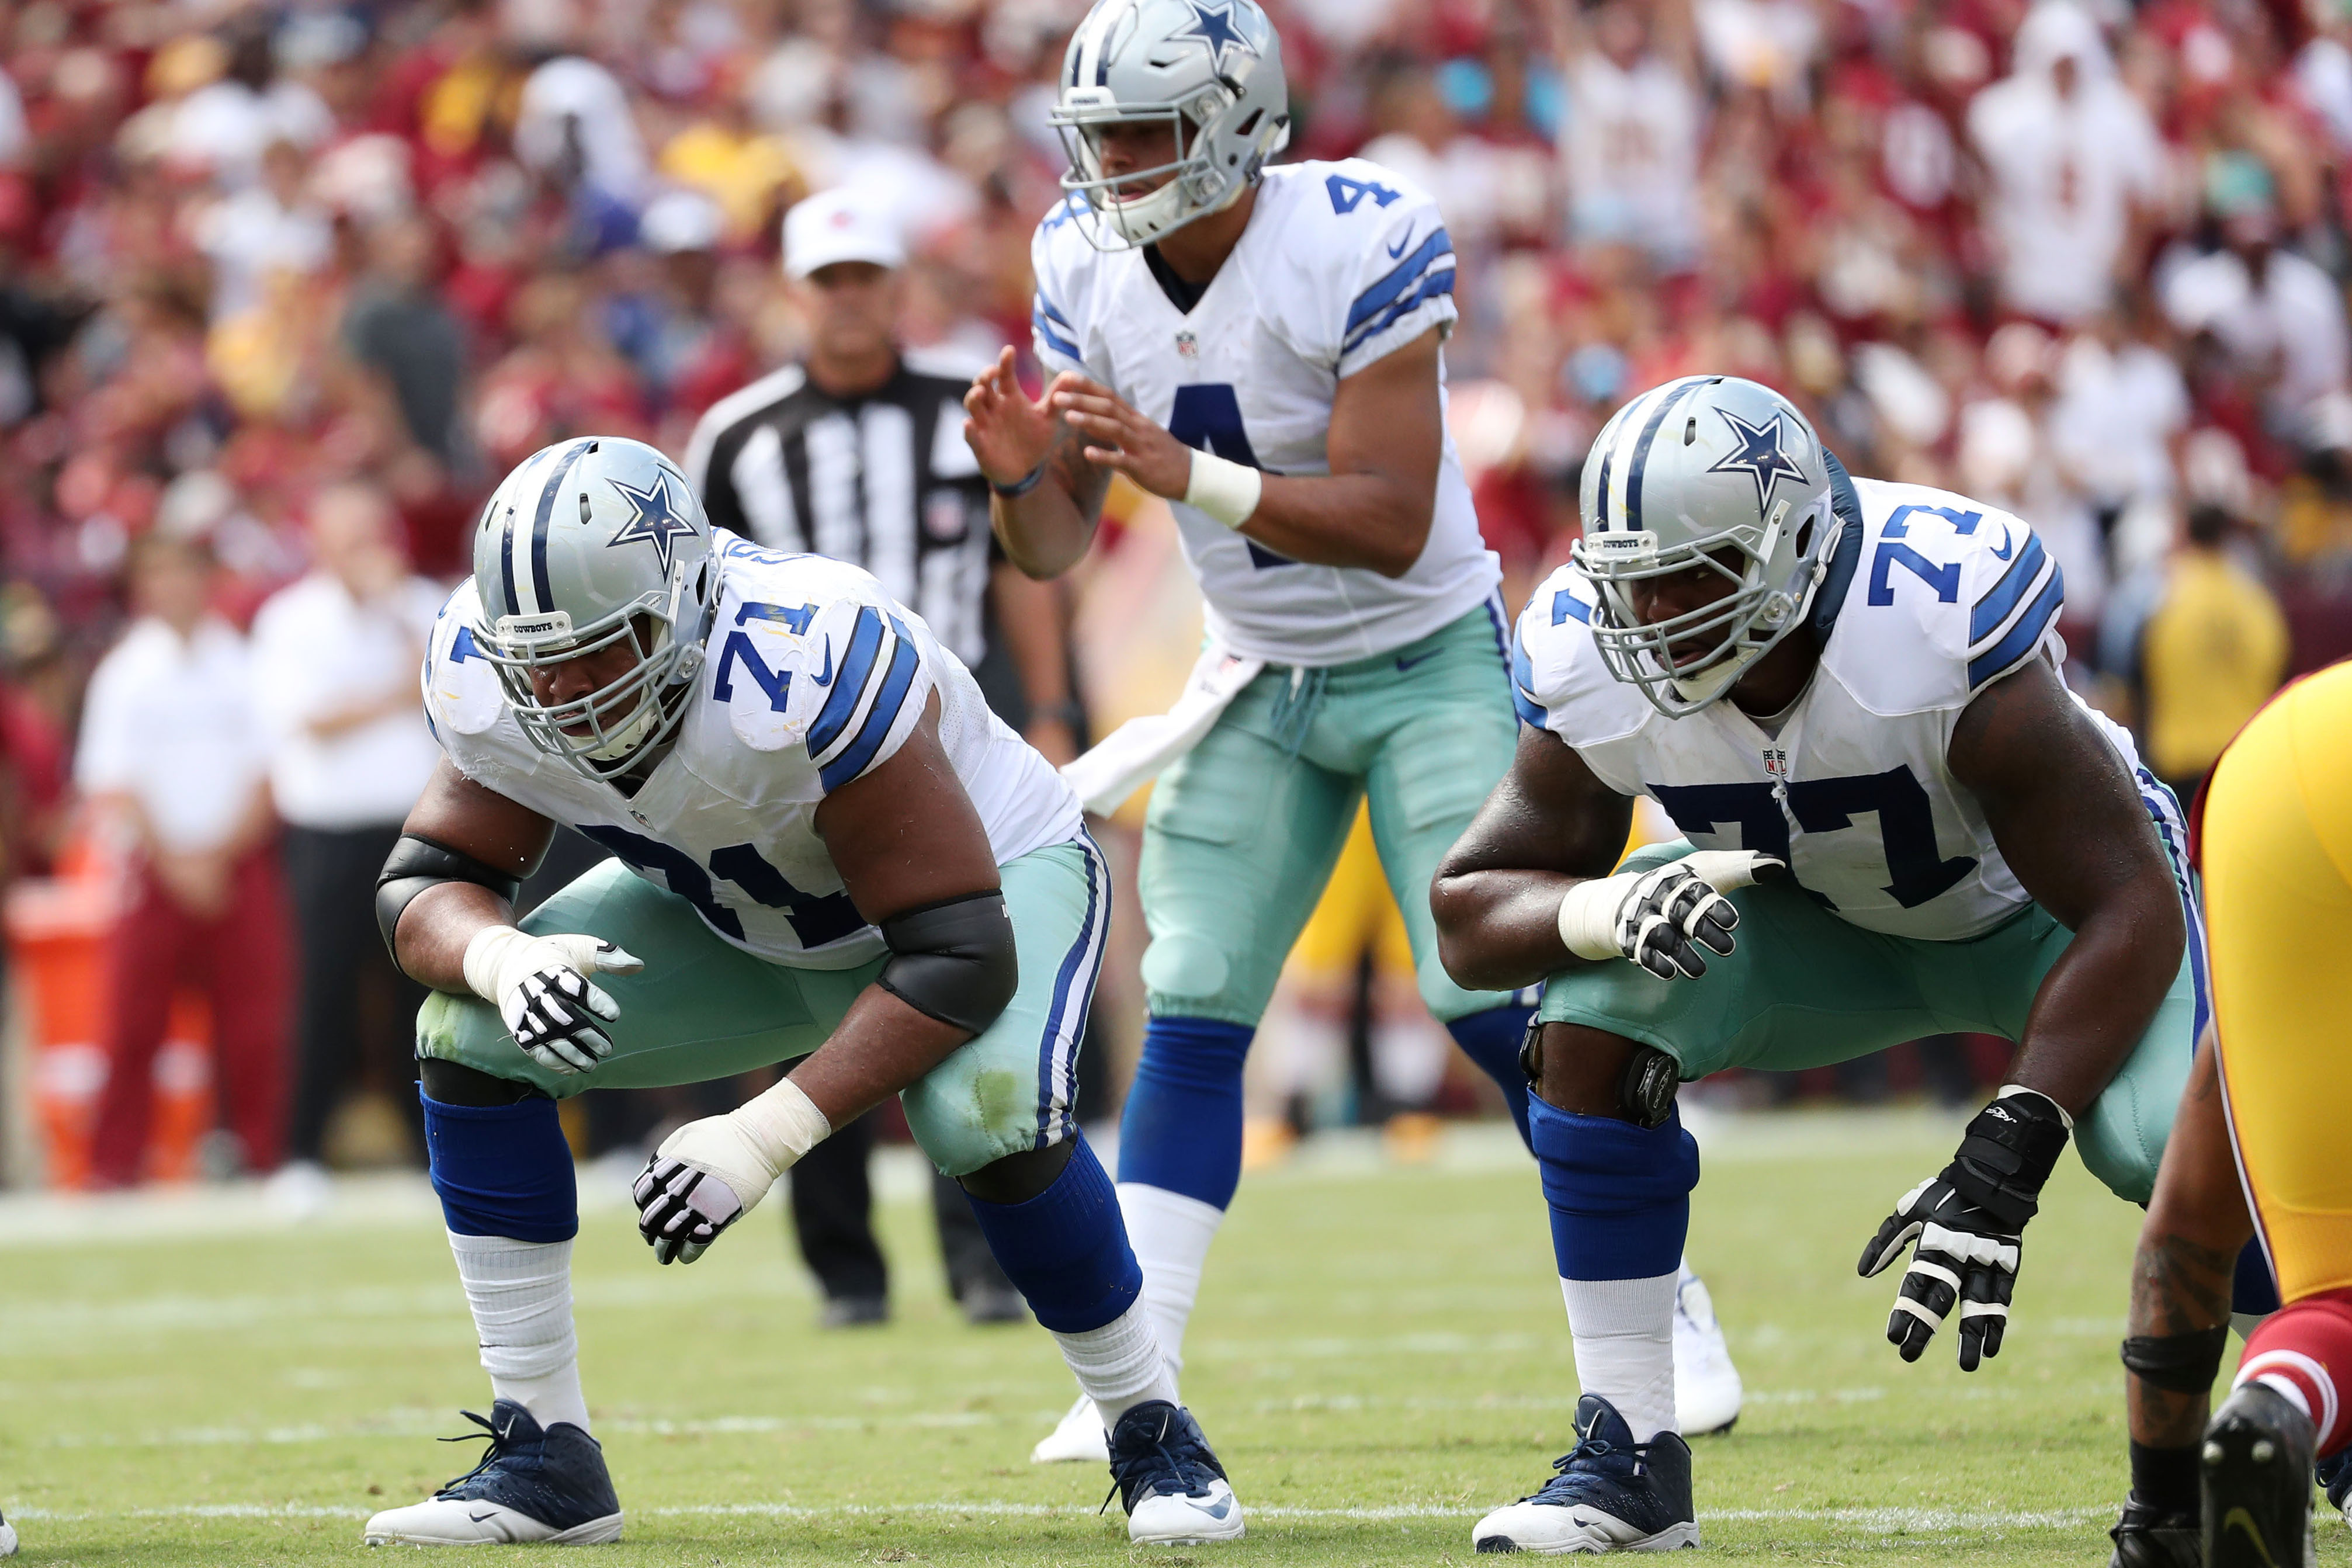 9555841-nfl-dallas-cowboys-at-washington-redskins